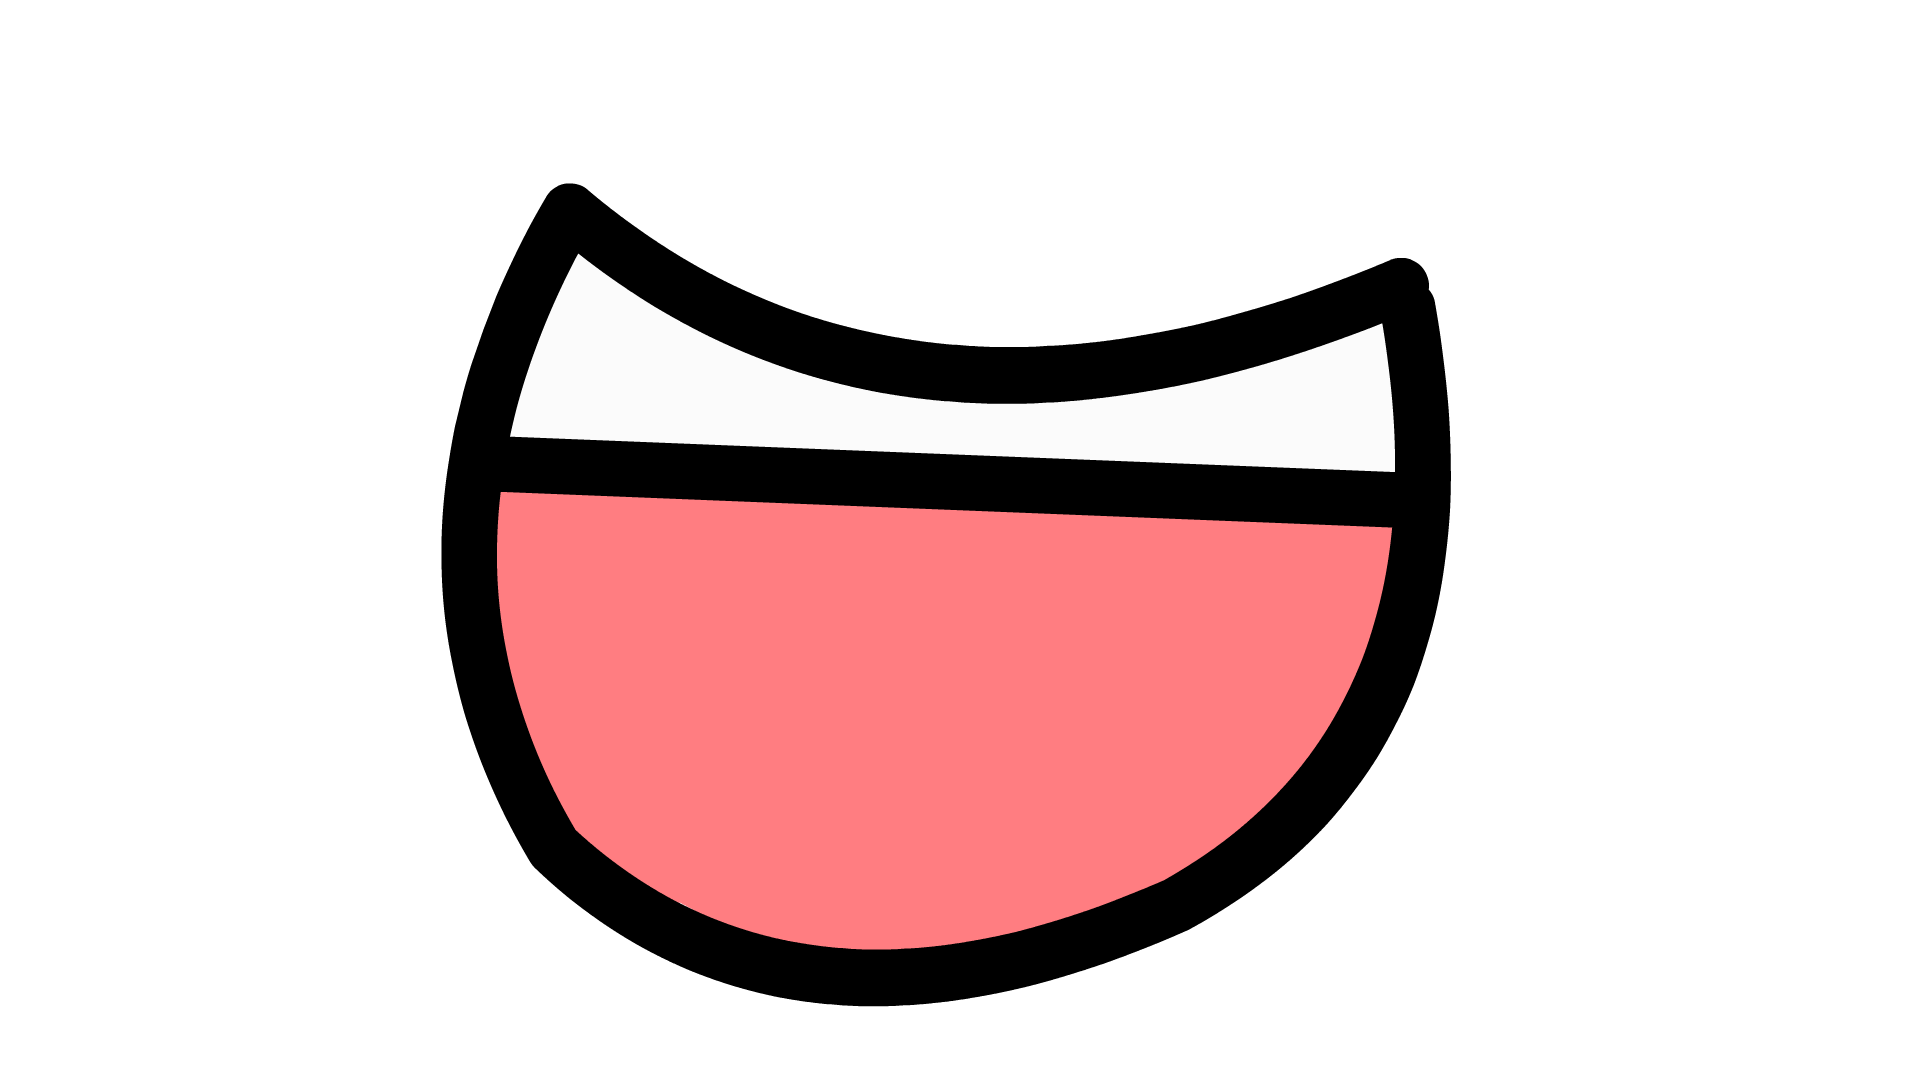 Smile mouth PNG